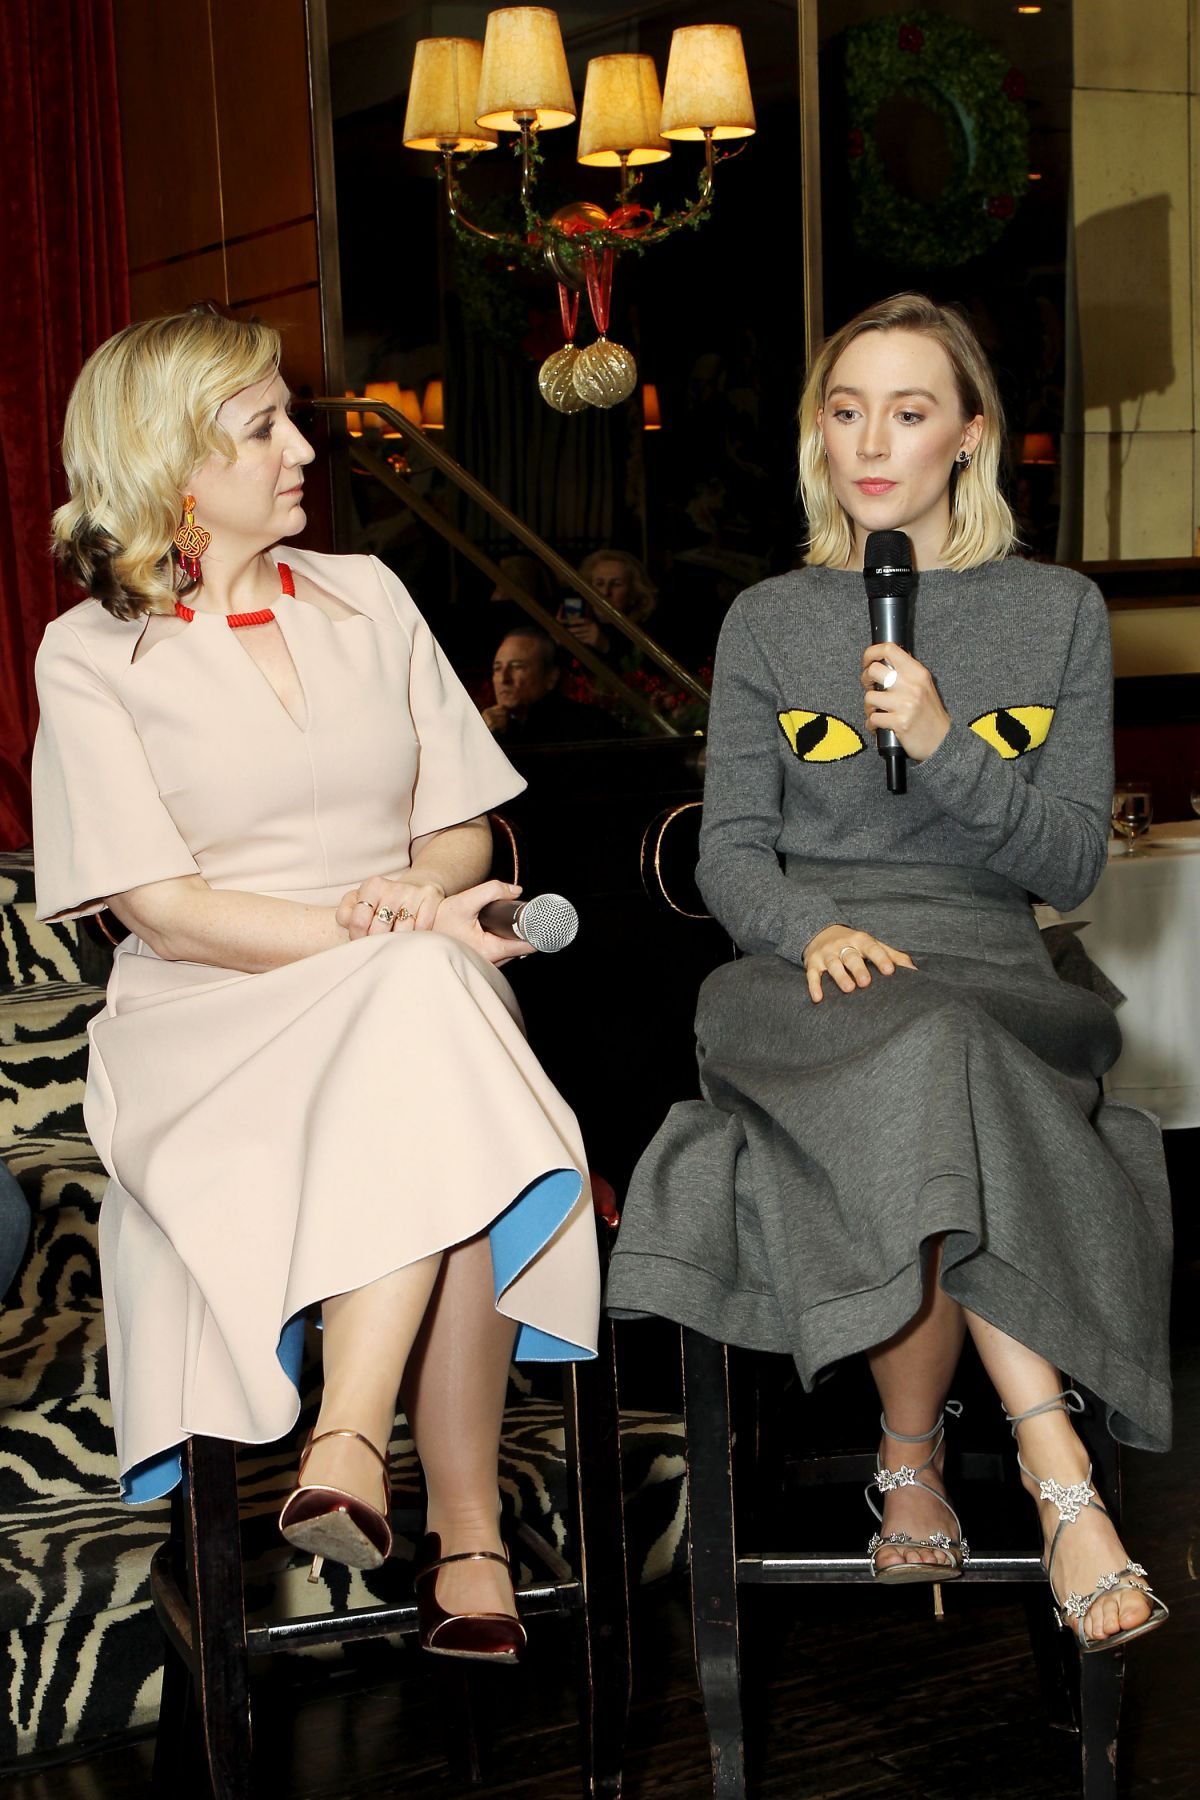 saoirse-ronan-at-mary-queen-of-scots-special-screening-q-a-and-reception-in-new-york-12-17-2018-3.jpg